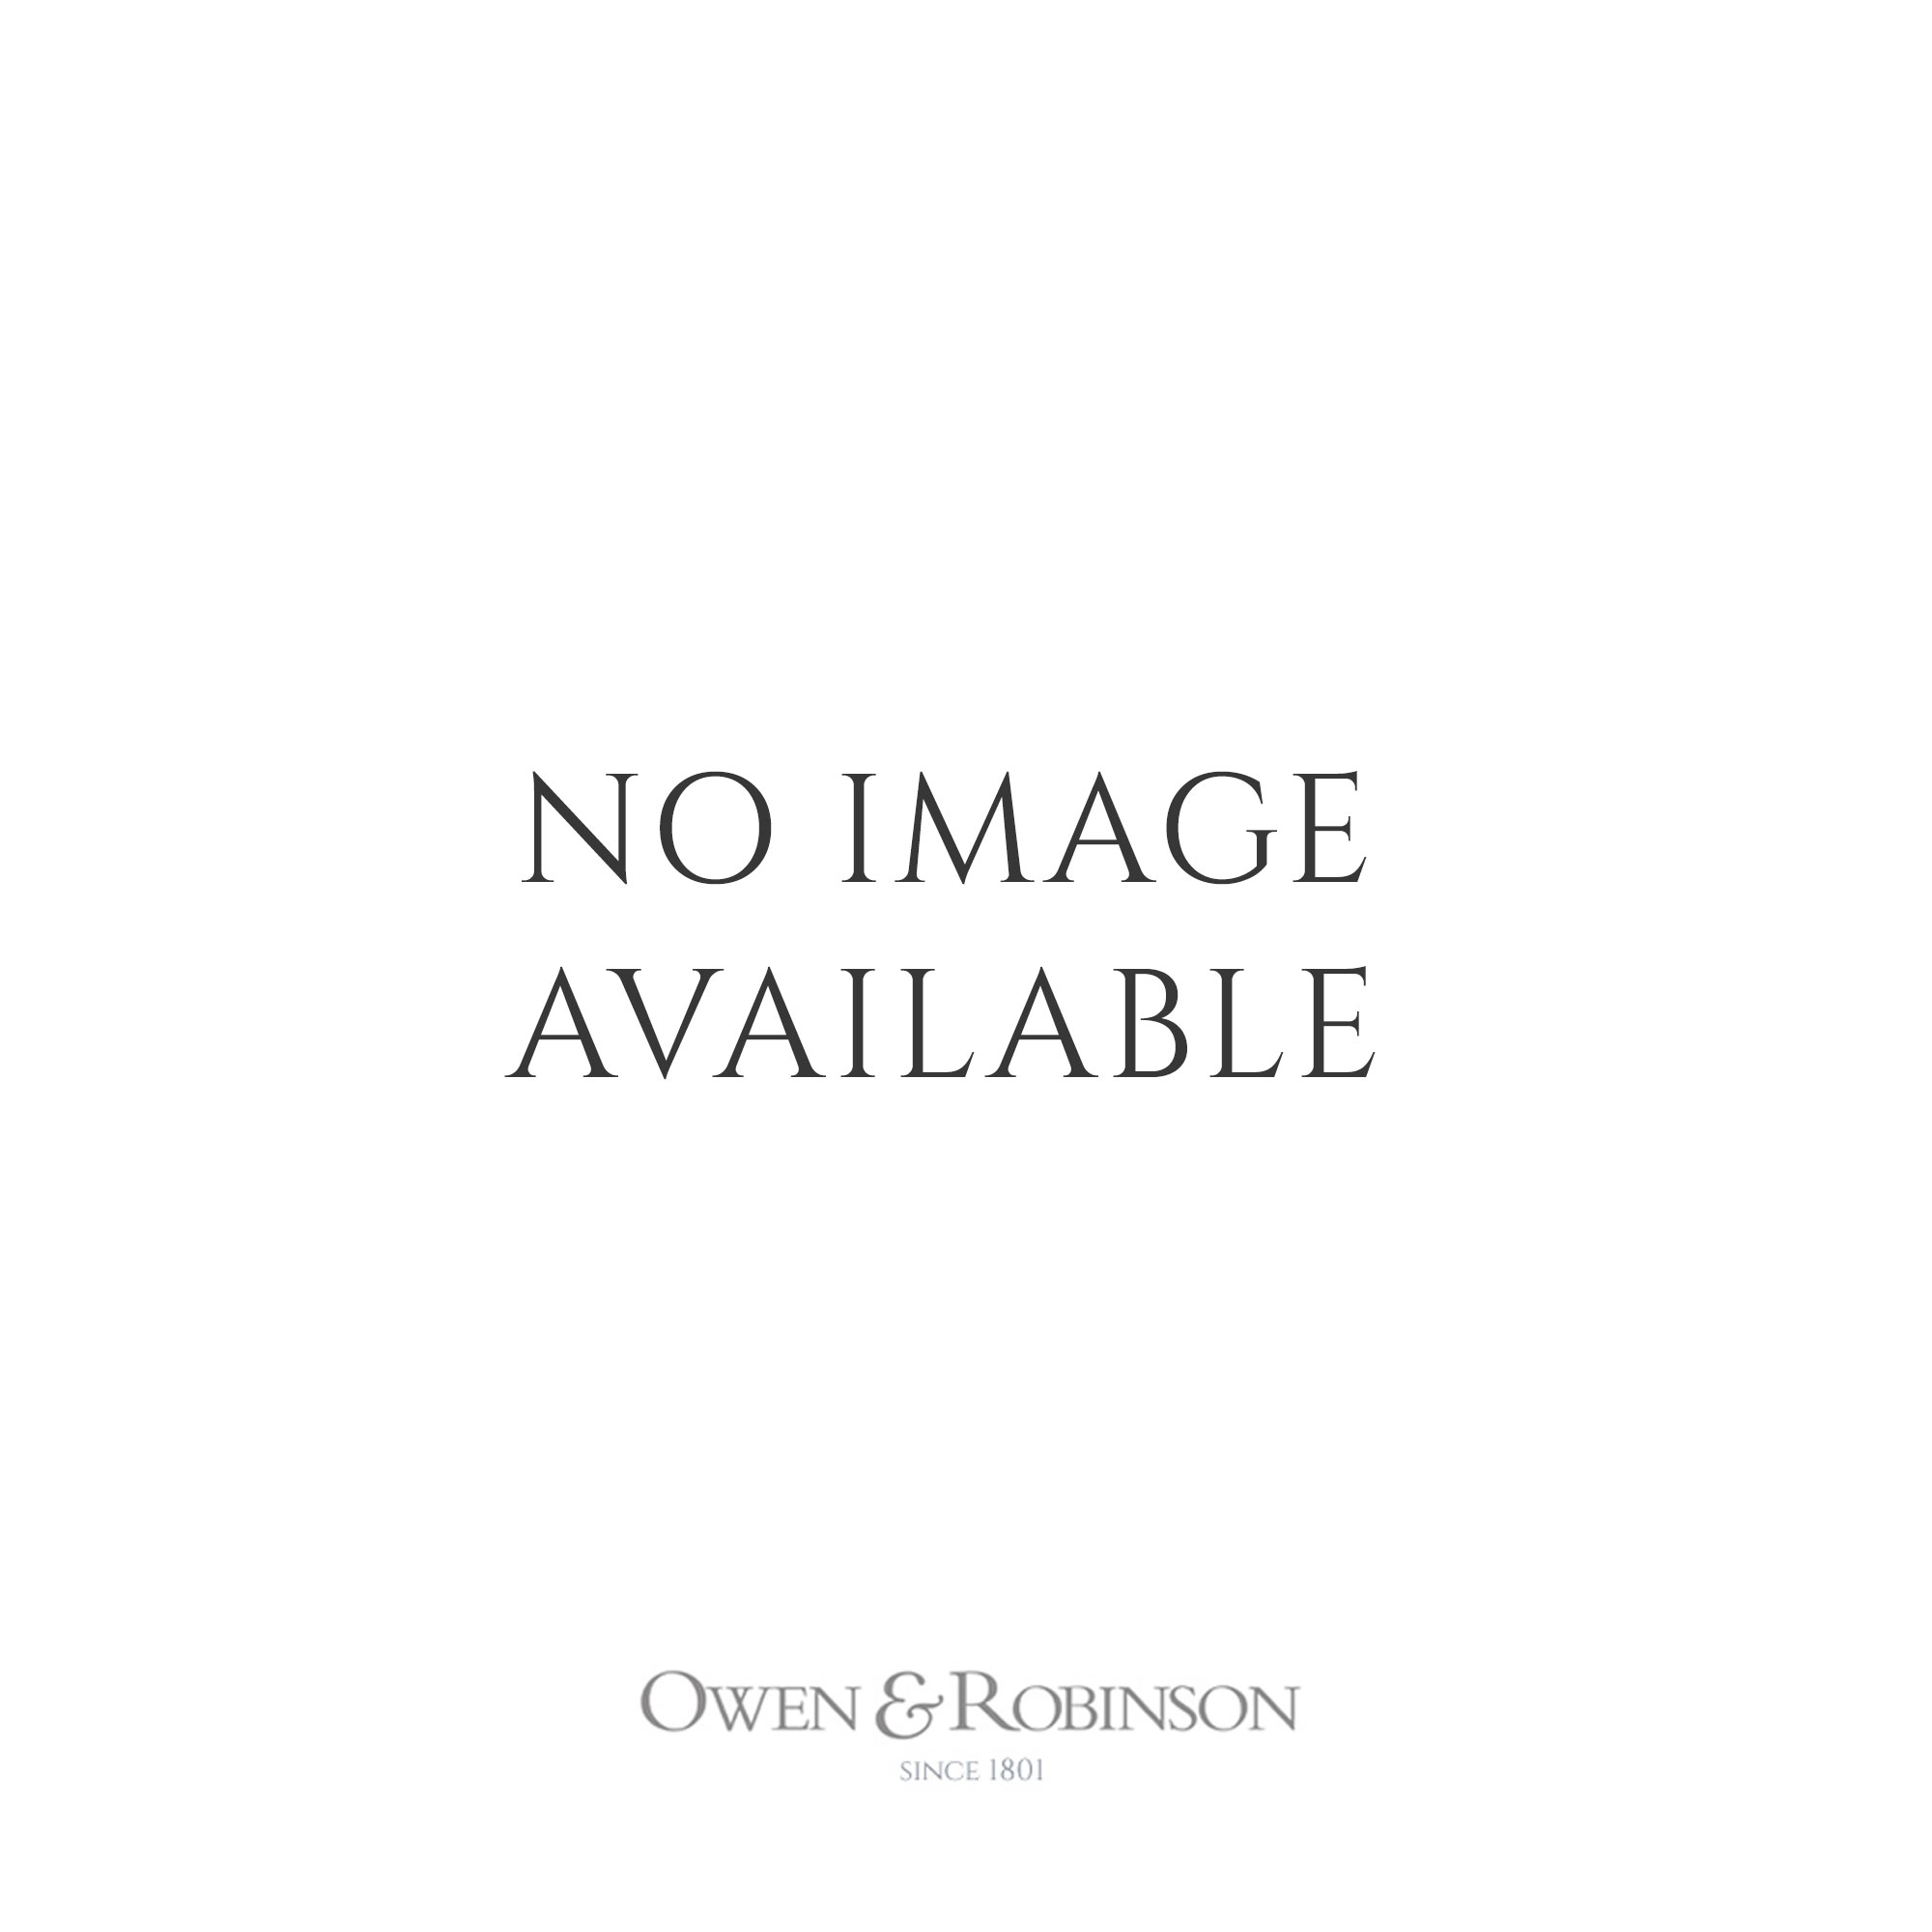 Baume & Mercier Clifton Club 'Indian Motorcycles Burt Munro Limited Edition 1967' Automatic Chronograph Silver Dial Strap Watch